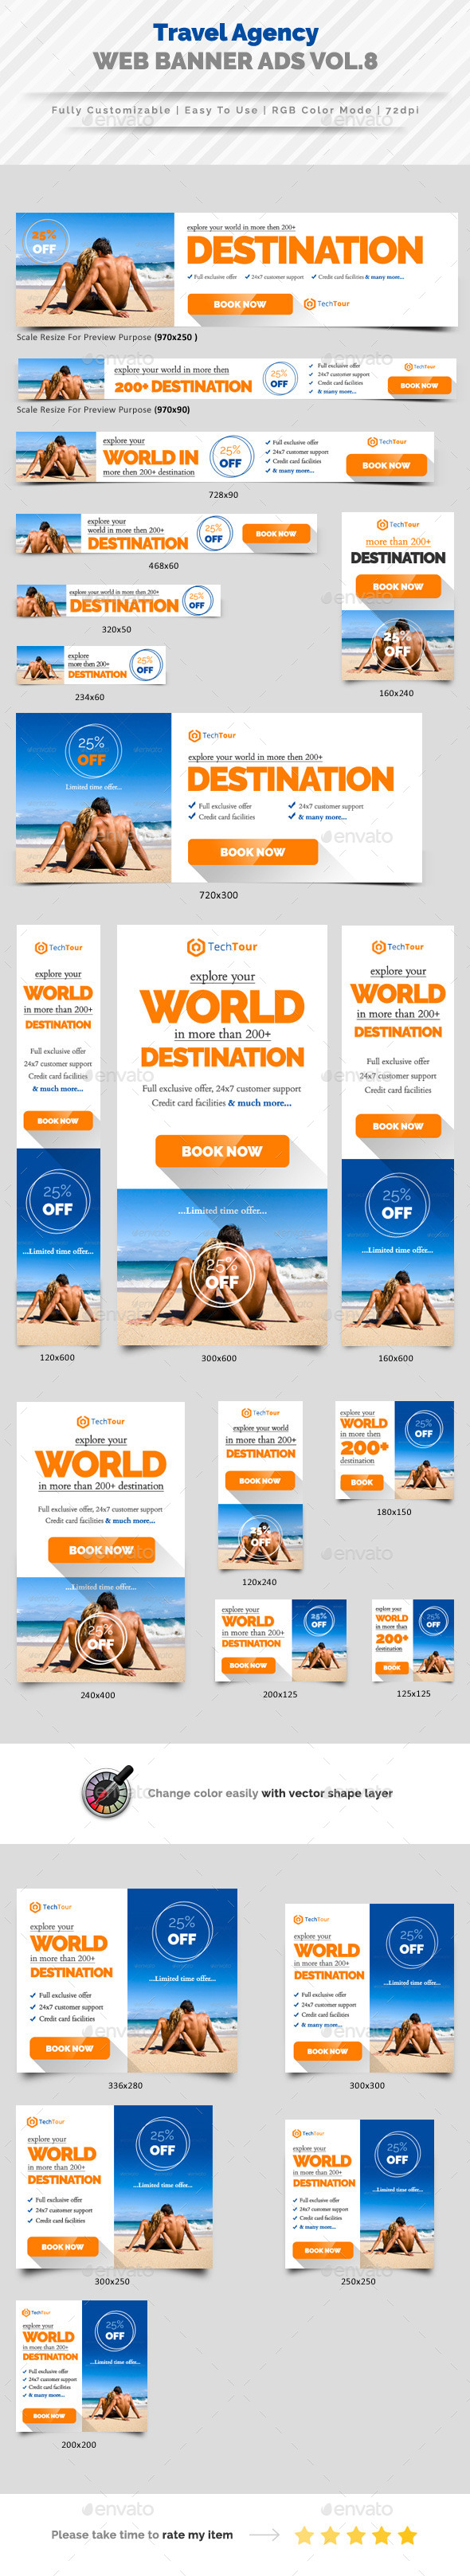 Travel Agency Web Banner Ads Vol.8 - Banners & Ads Web Elements